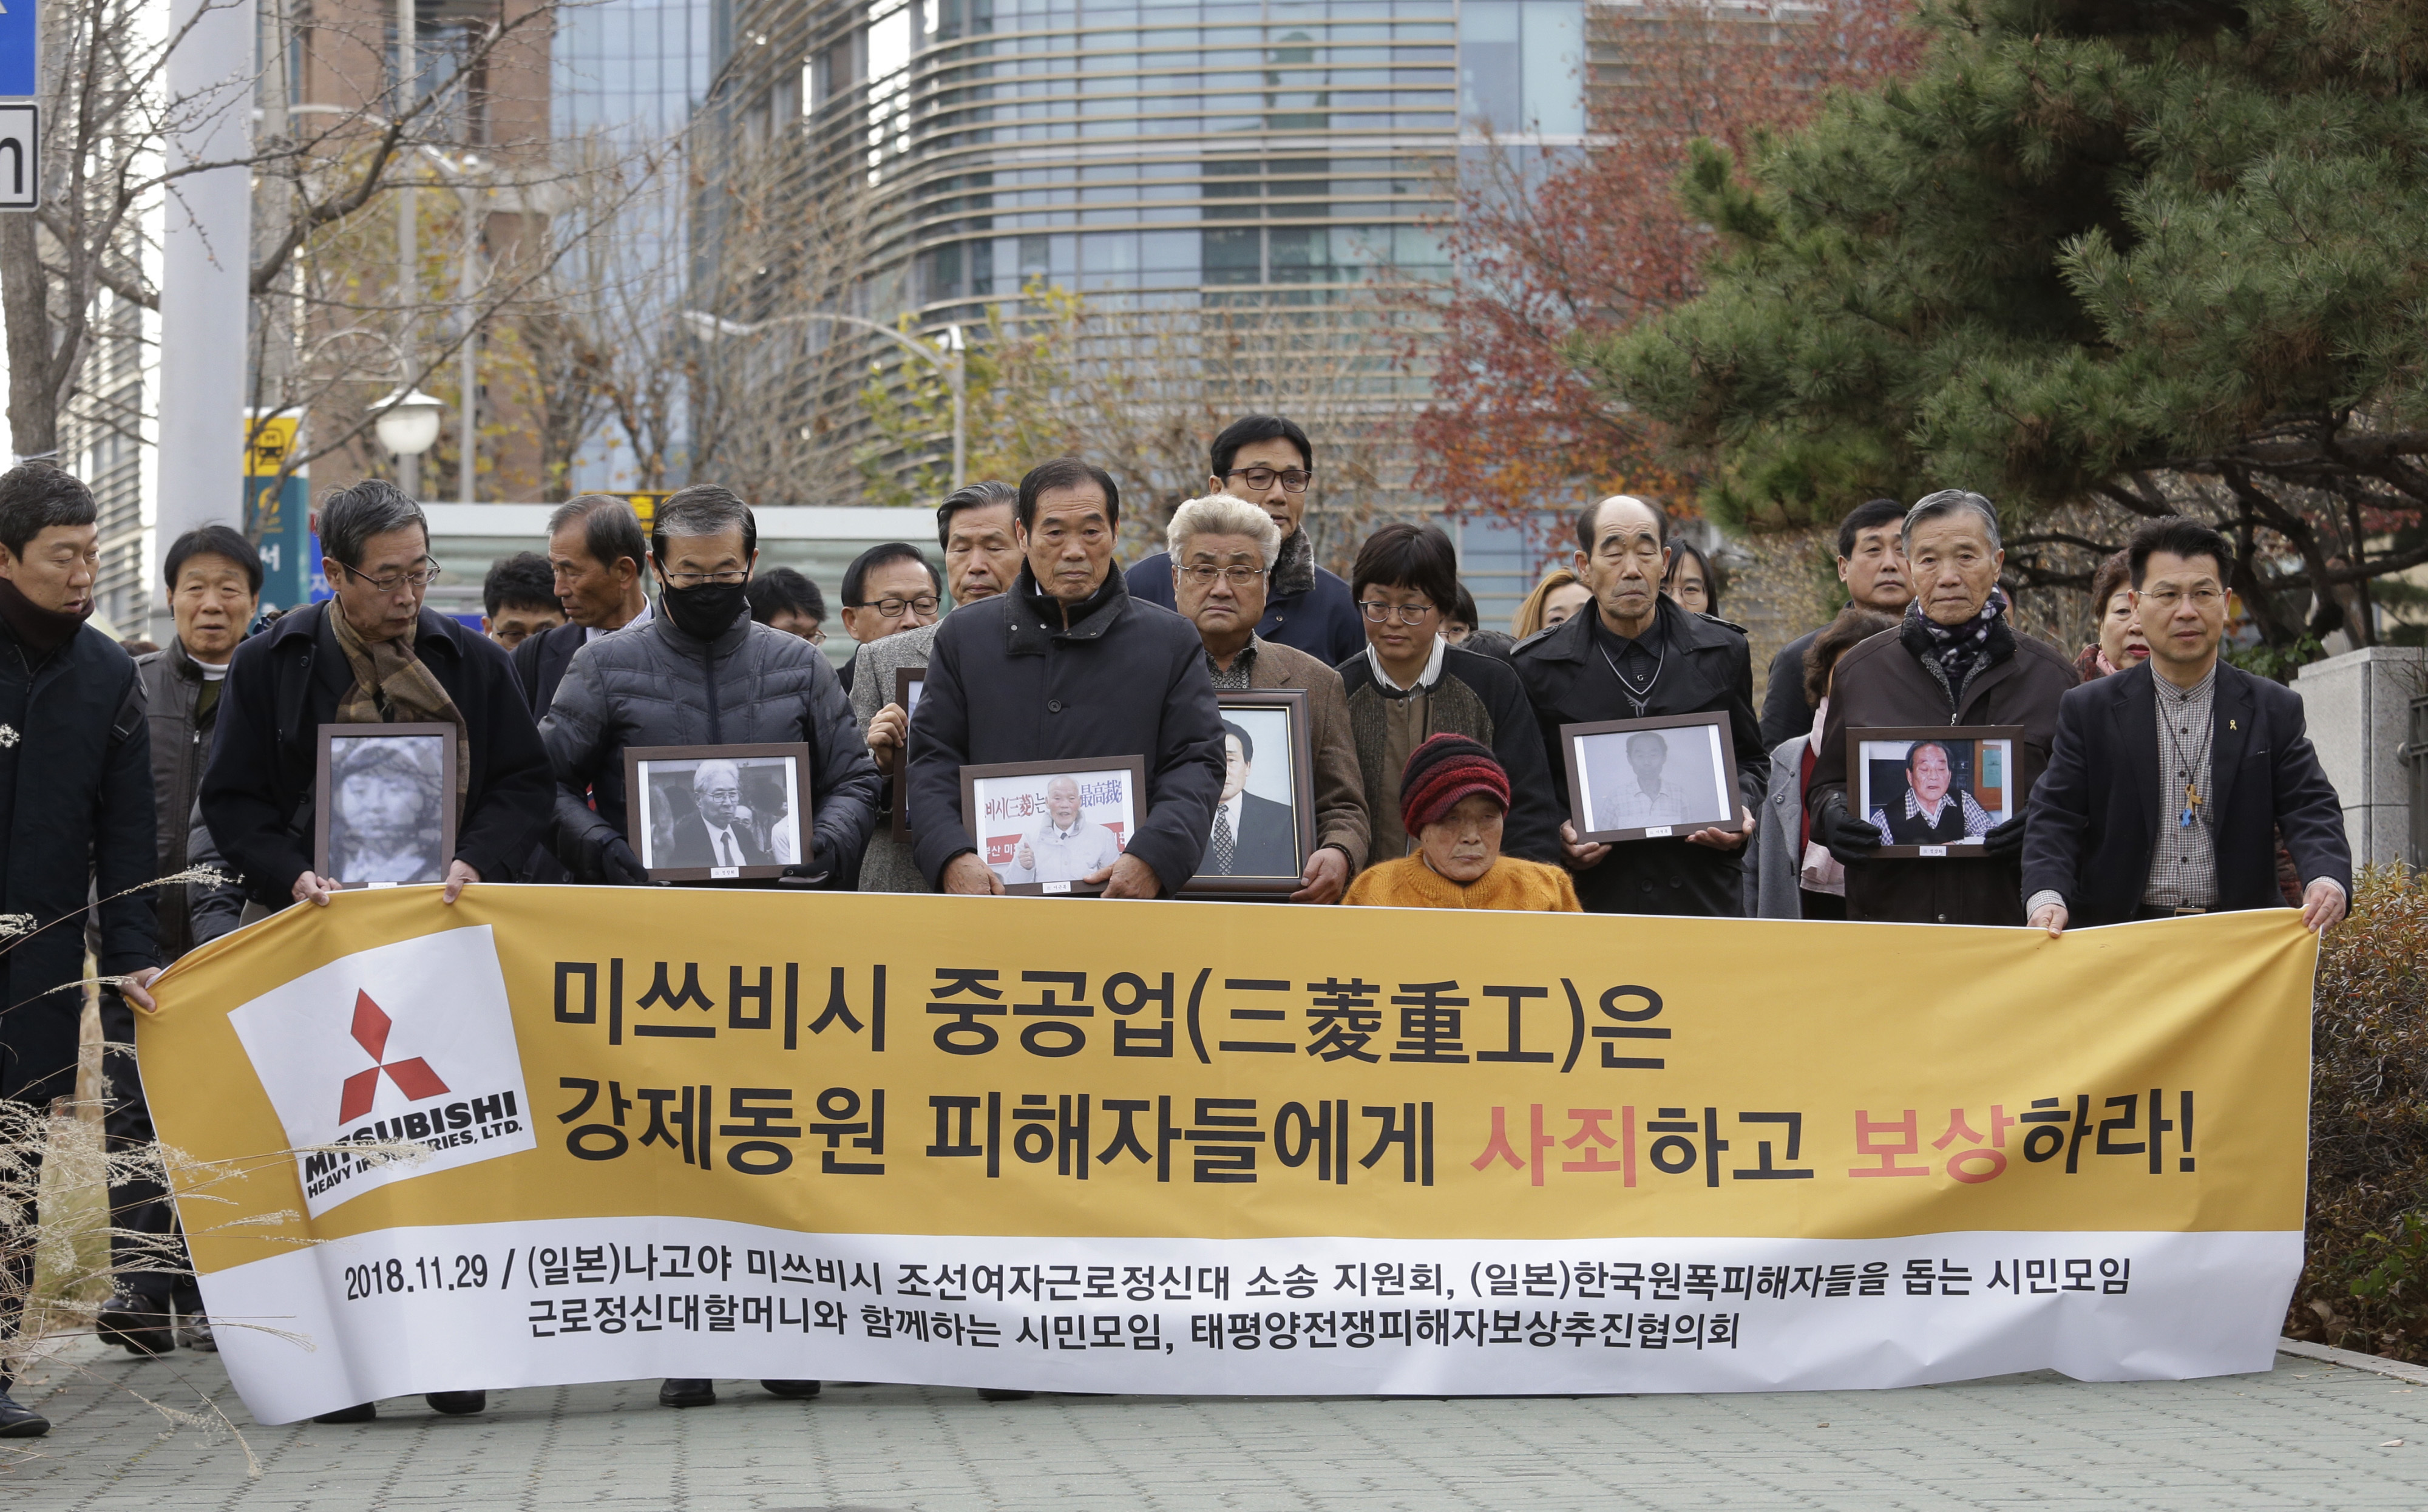 """Victims of Japan's forced labor and their family members arrive at the Supreme Court in Seoul, South Korea, Nov. 29, 2018. The sign reads """" Mitsubishi Heavy Industries apologize and compensate victims."""""""